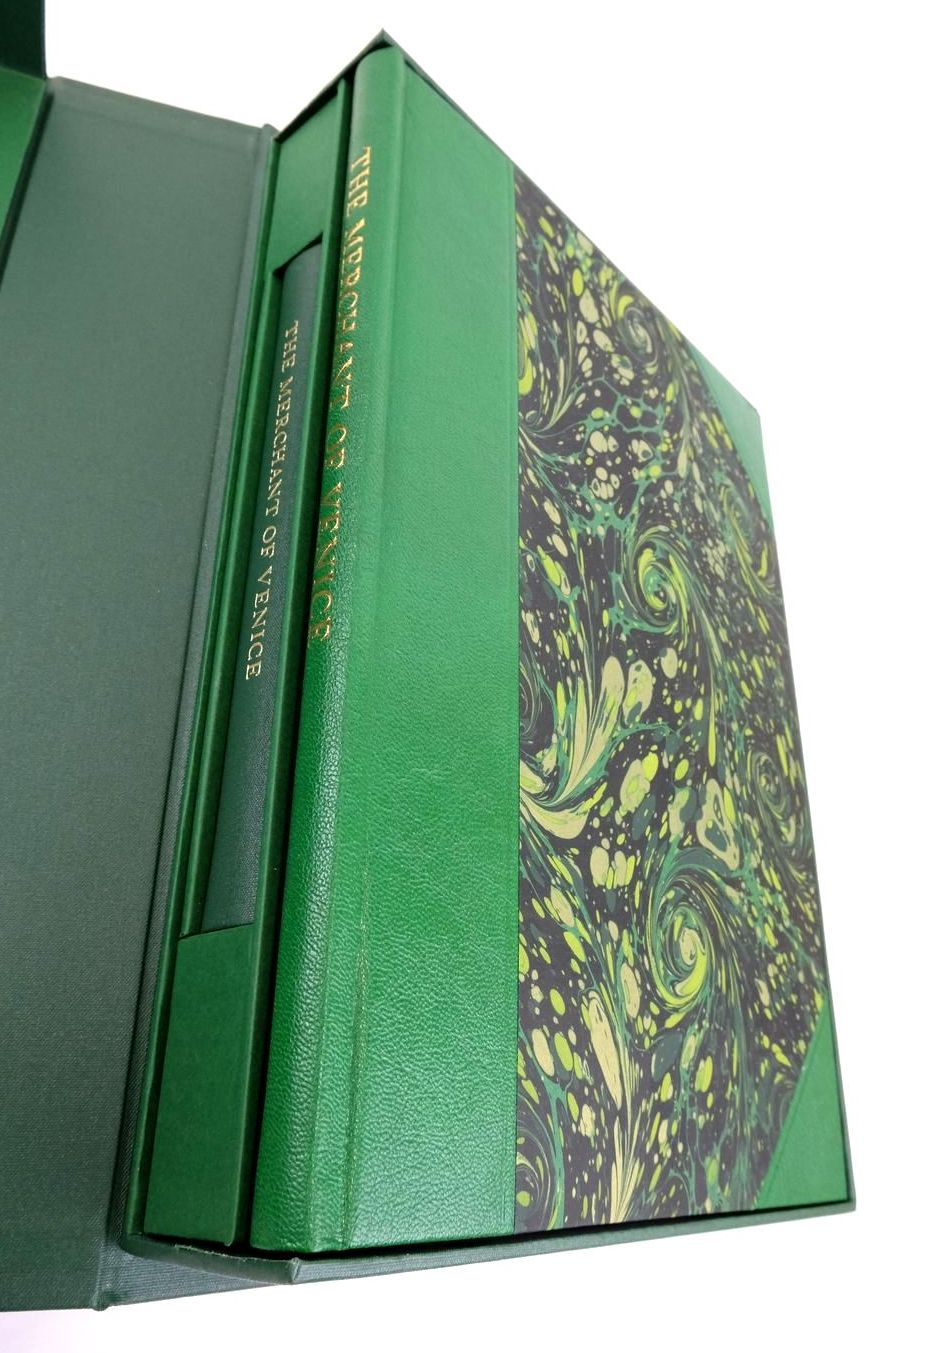 Photo of THE MERCHANT OF VENICE (THE LETTERPRESS SHAKESPEARE) written by Shakespeare, William Halio, Jay L. published by Folio Society (STOCK CODE: 1822196)  for sale by Stella & Rose's Books